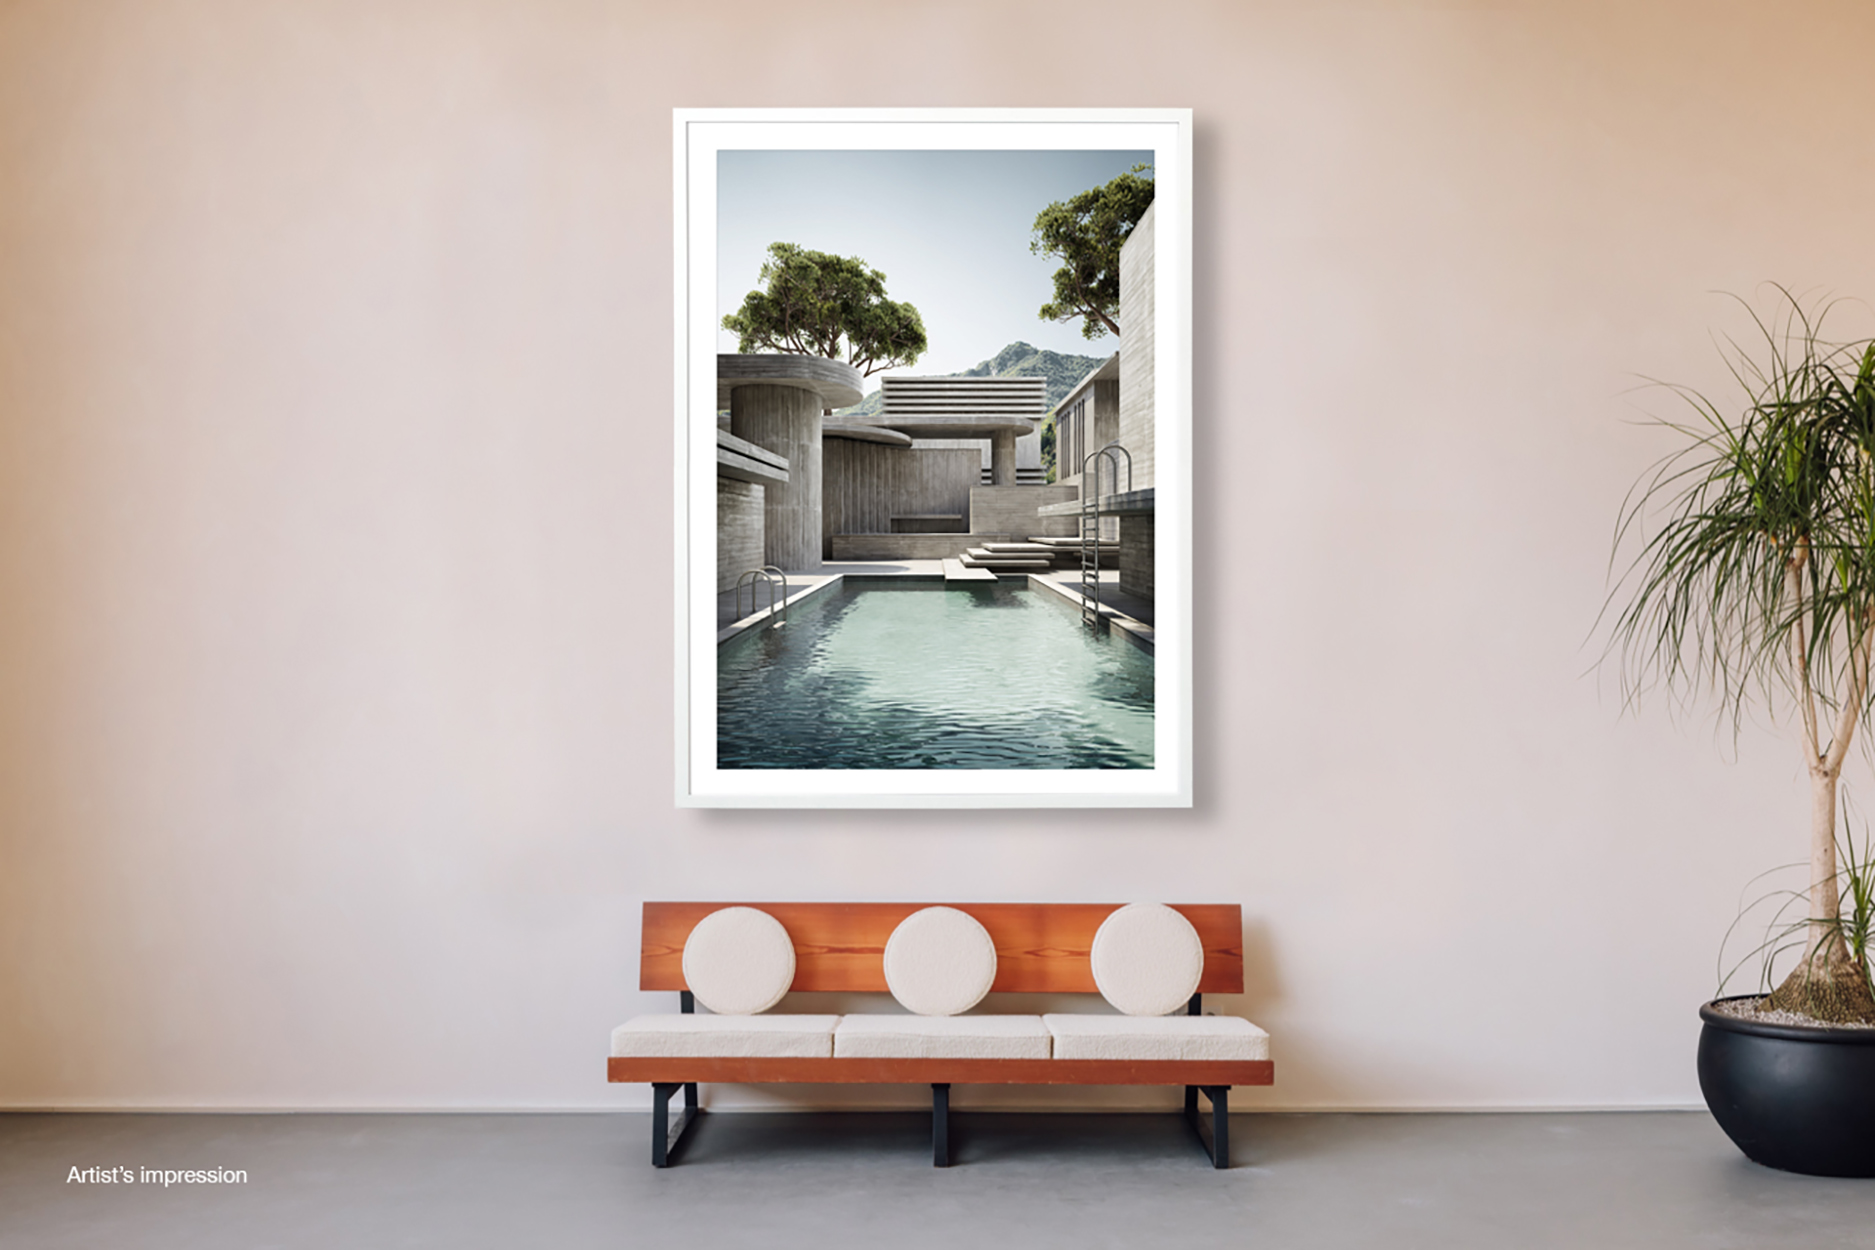 Concrete Pool_3_Room_2_900points_wide